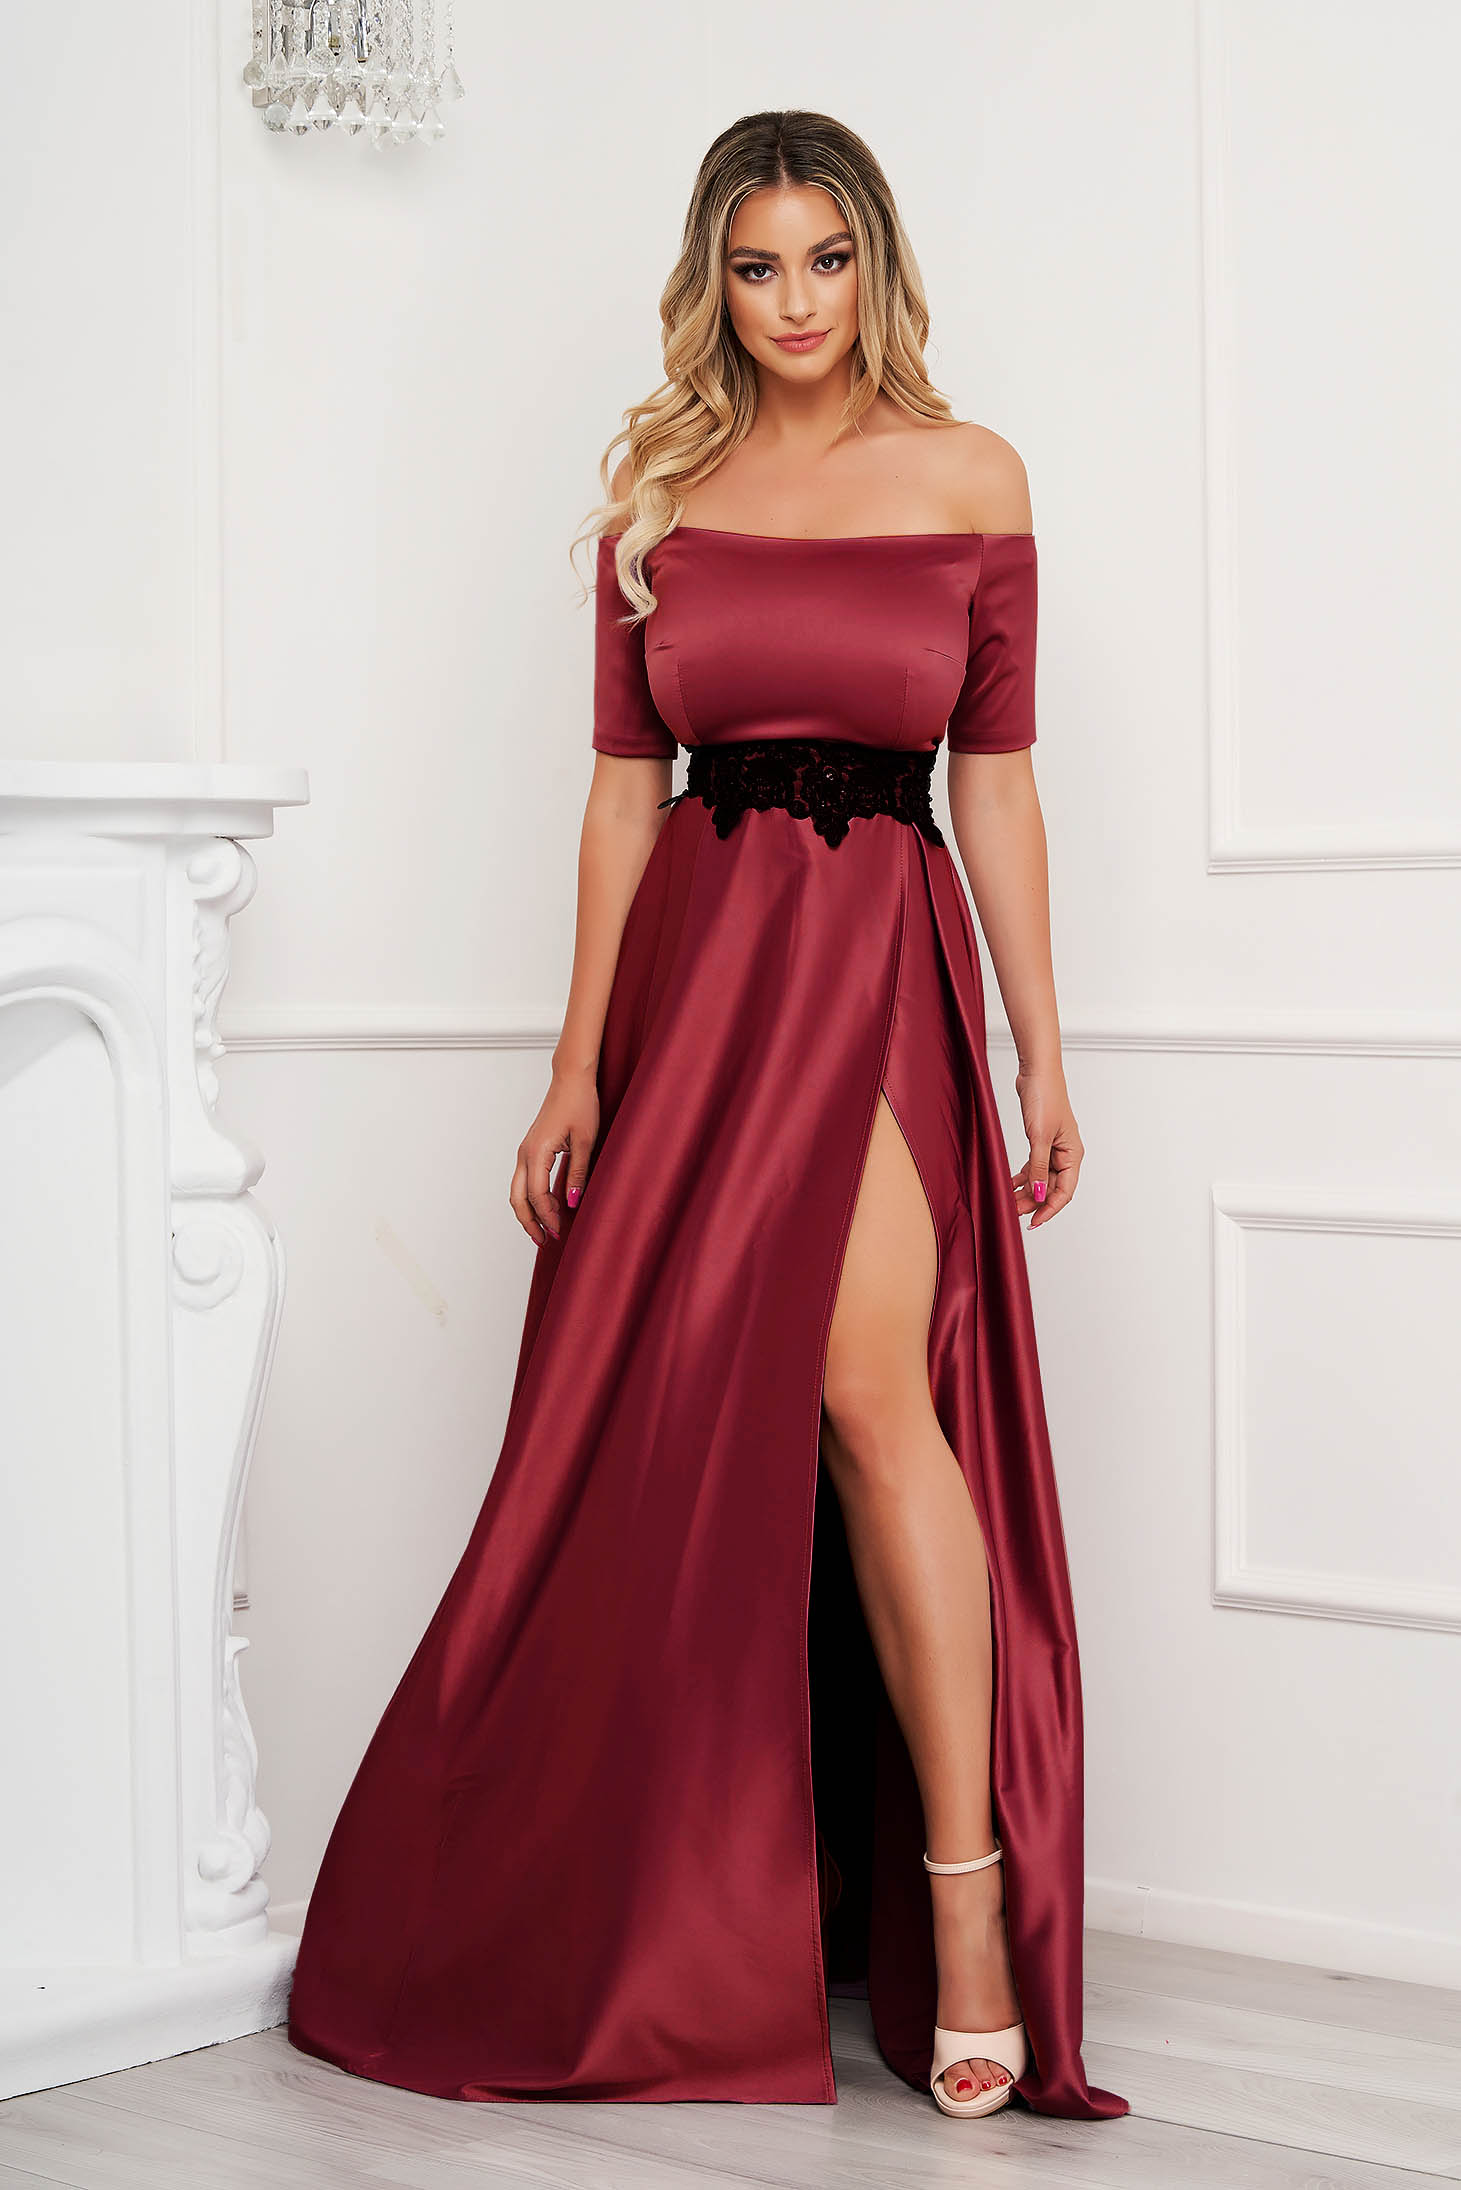 Burgundy dress from satin cloche occasional with embroidery details on the shoulders slit